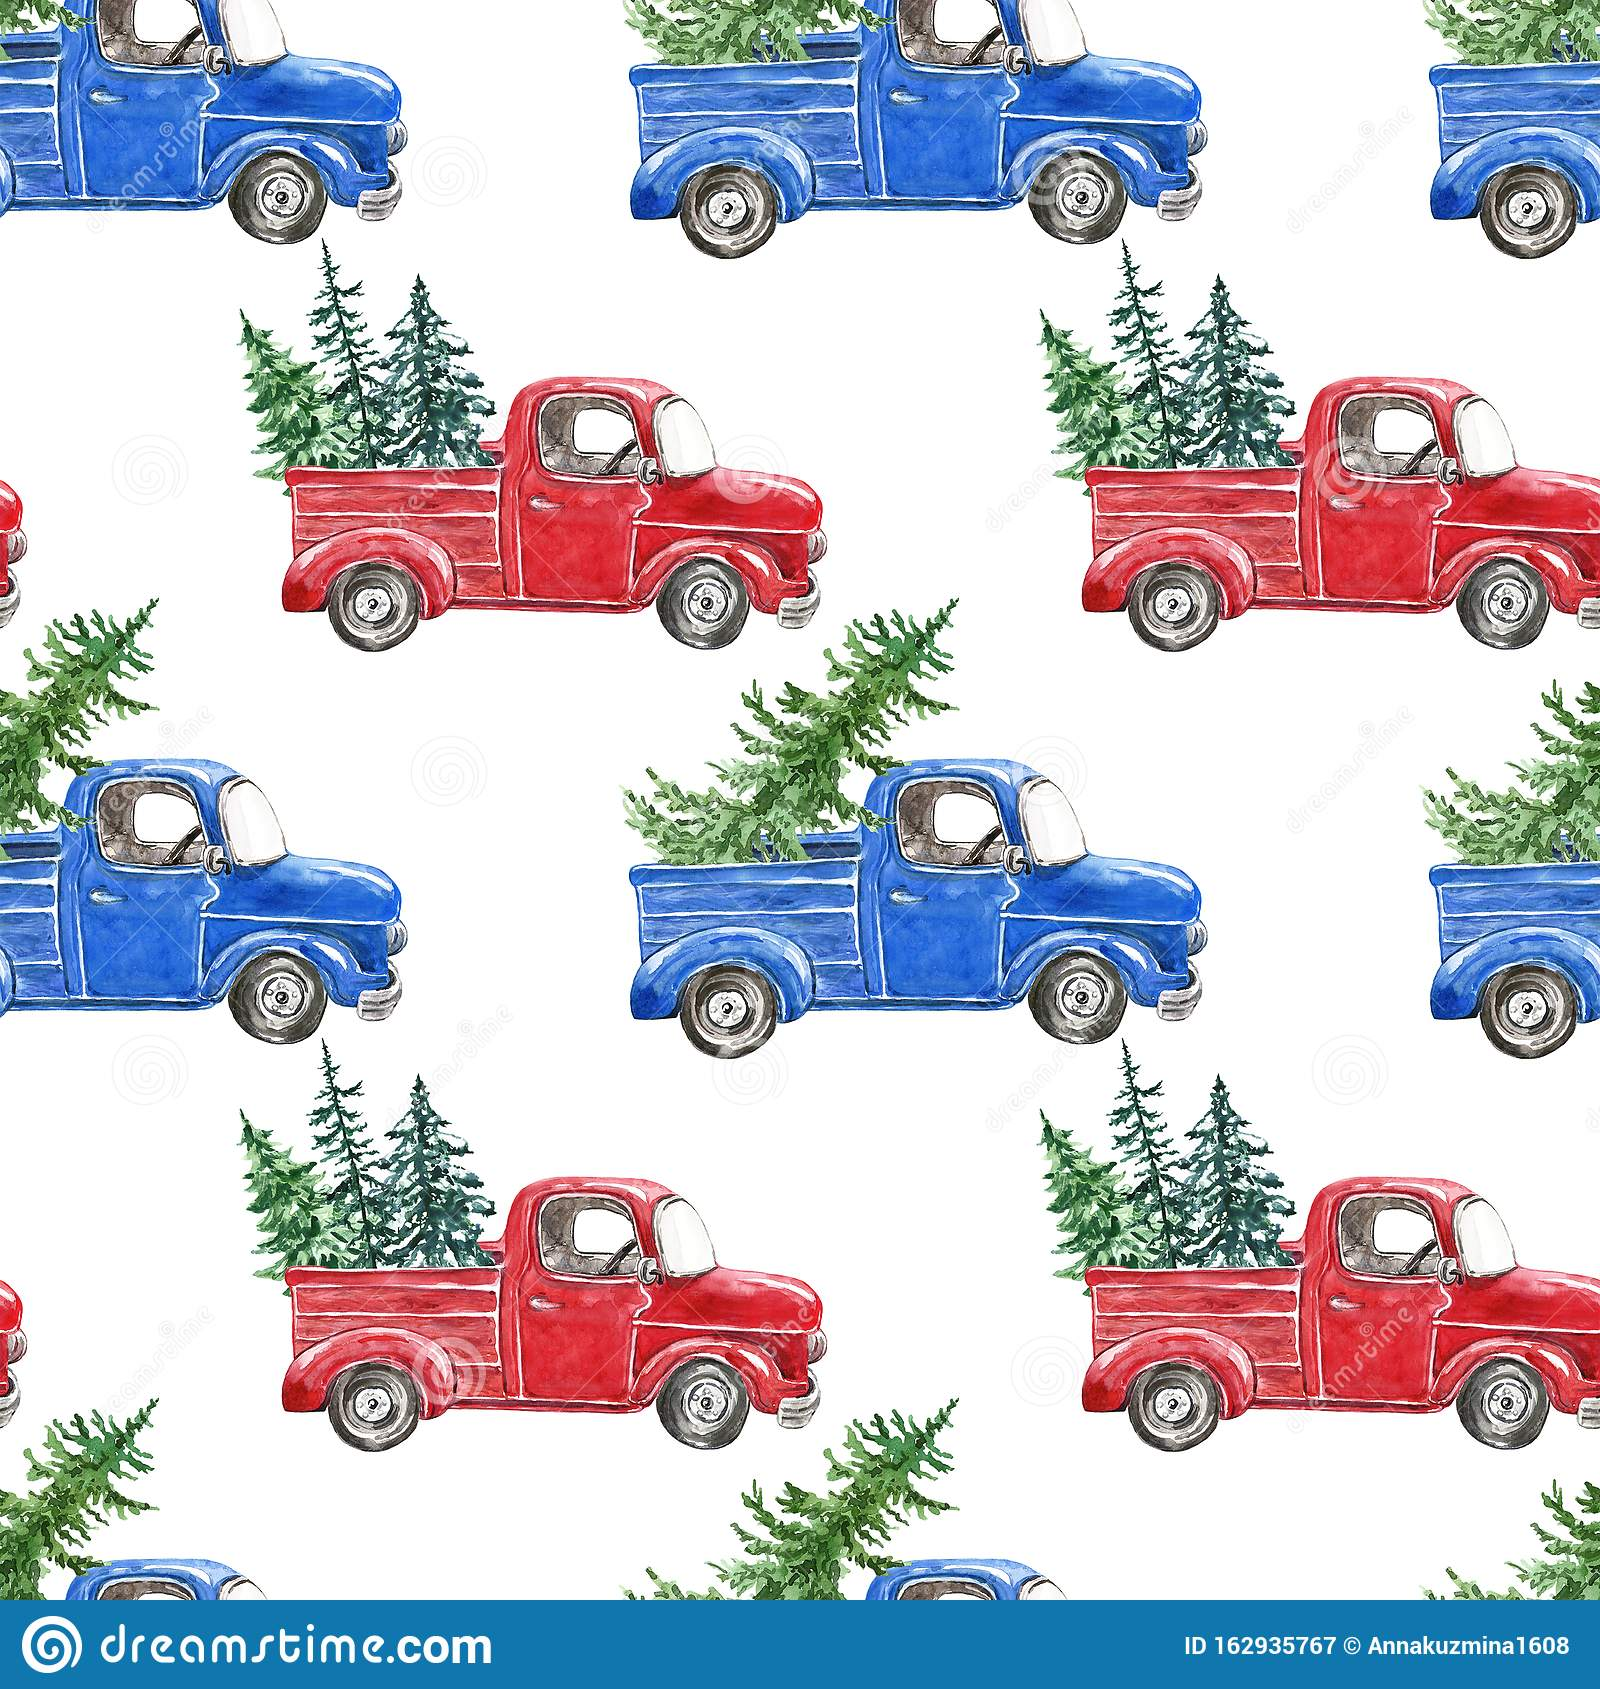 3 564 Christmas Truck Photos Free Royalty Free Stock Photos From Dreamstime